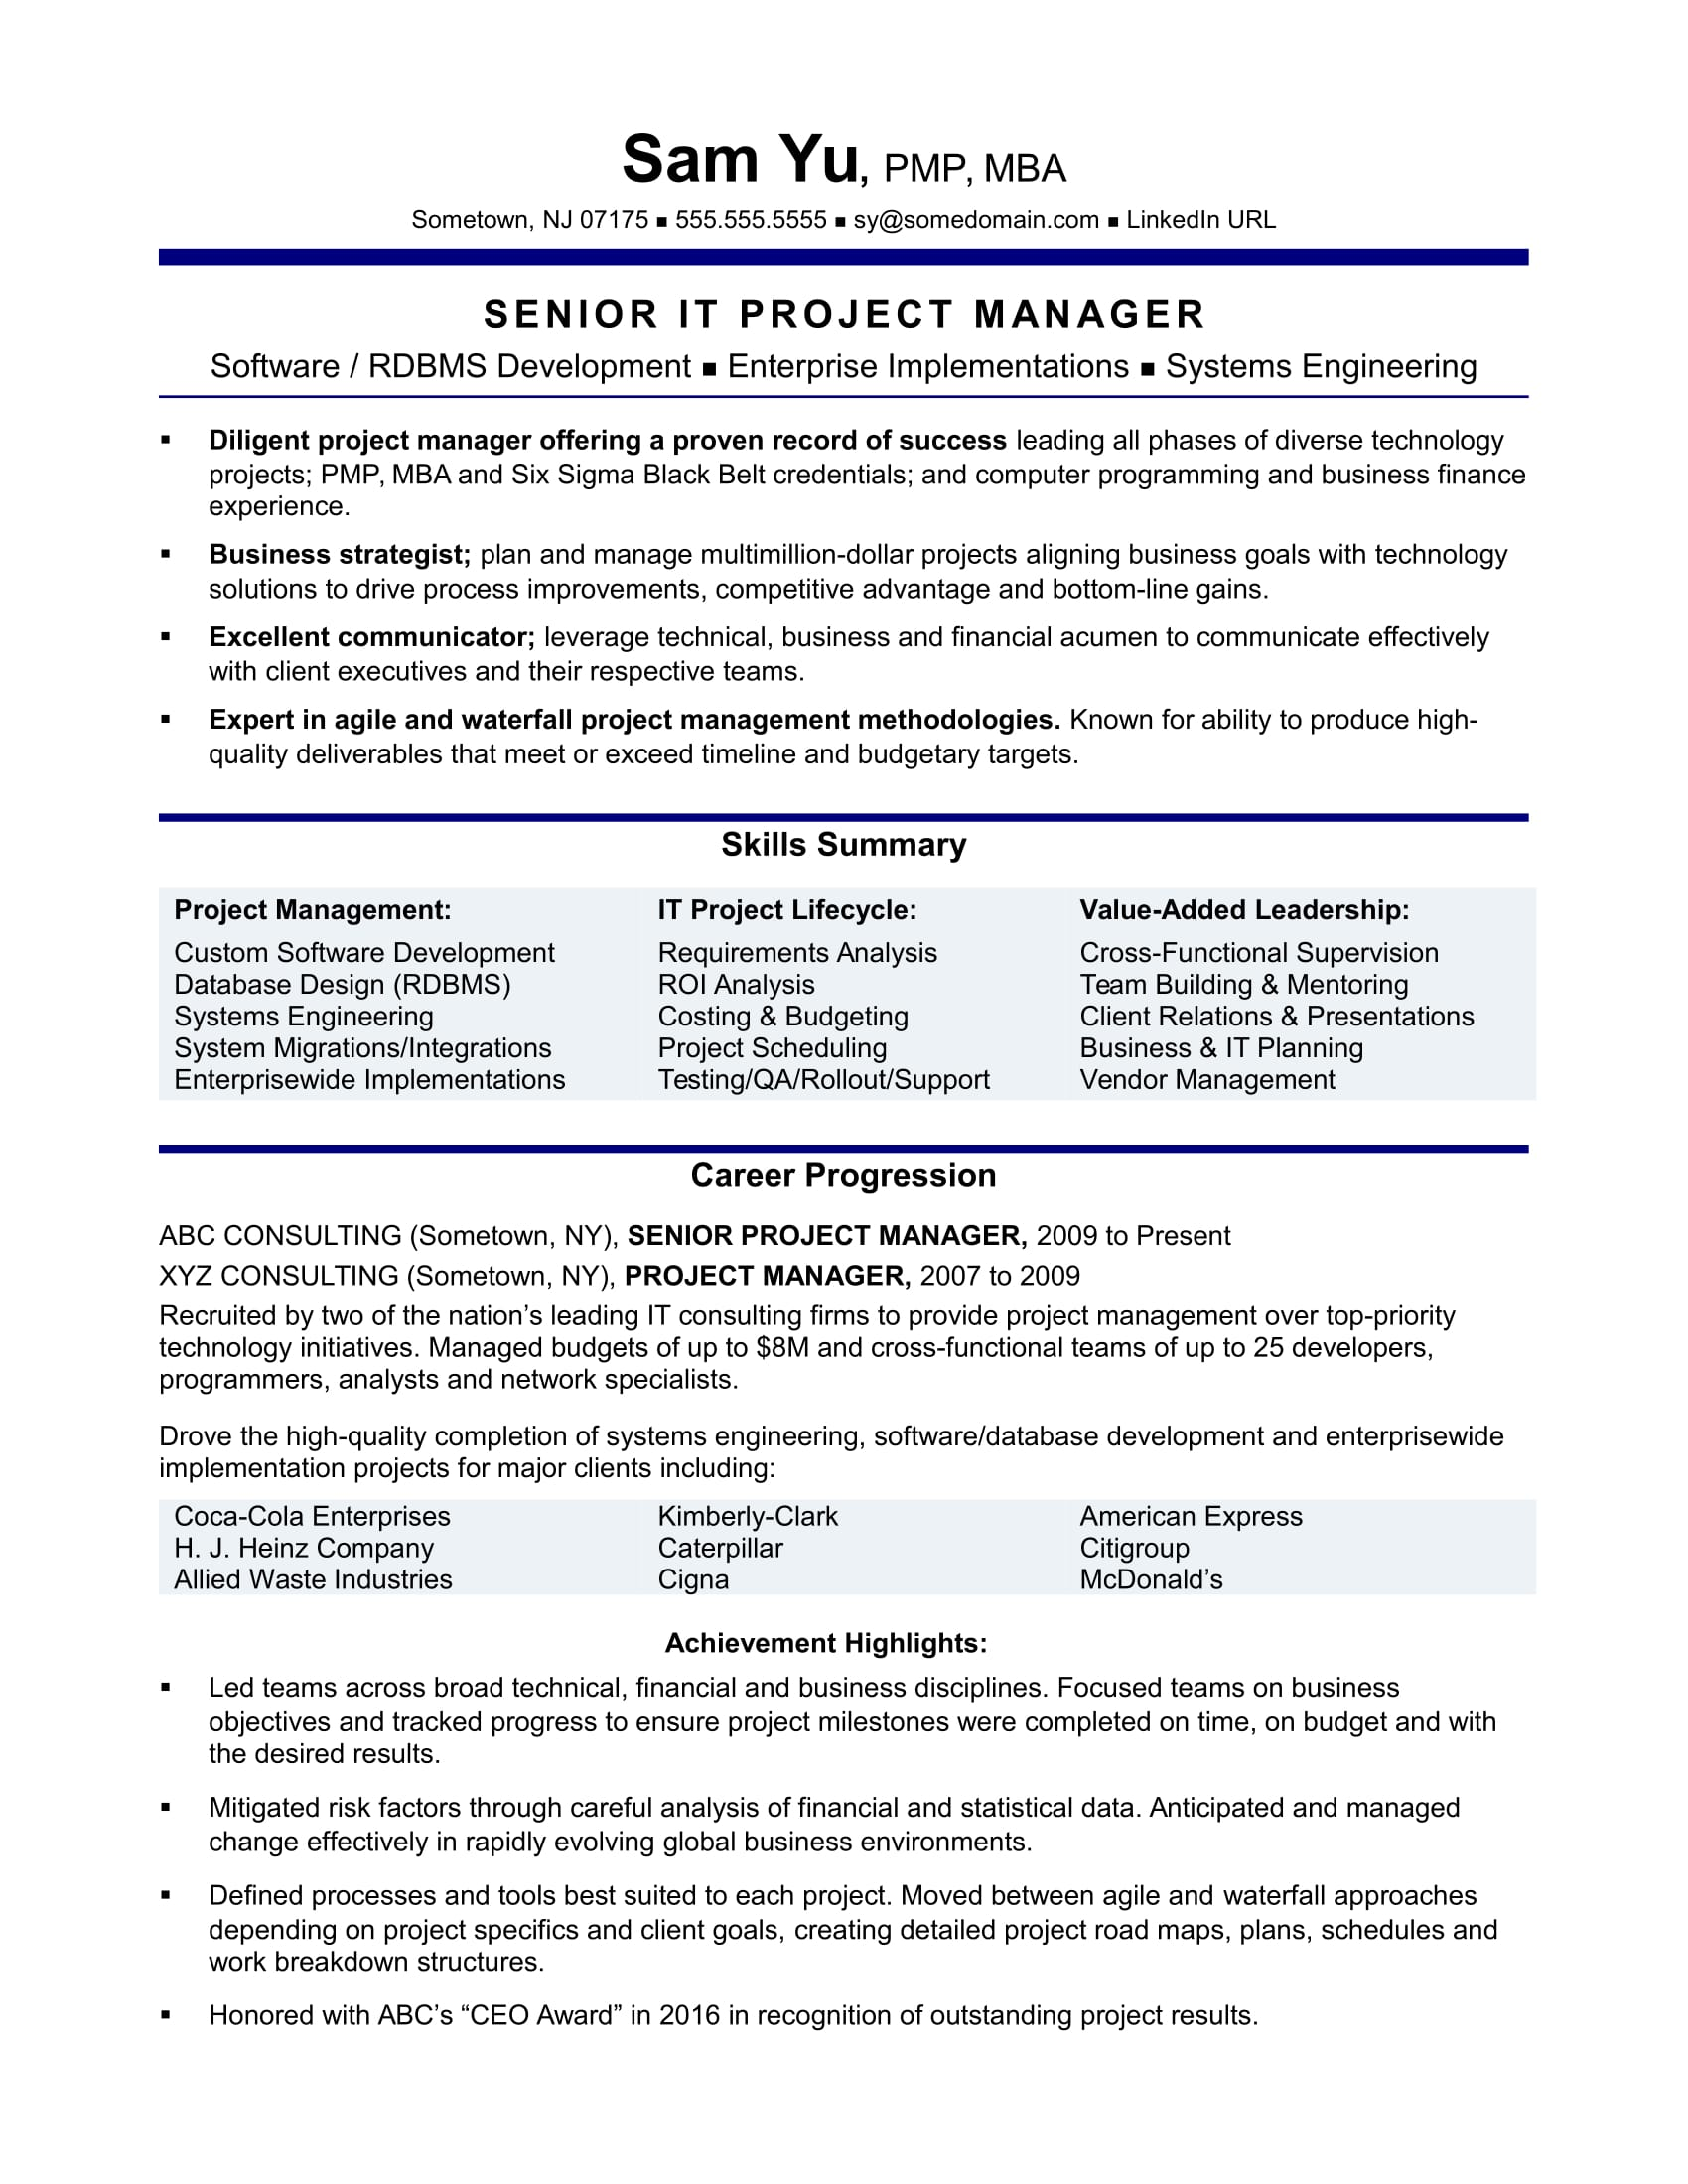 experienced it project manager resume sample monster software development summary Resume Software Development Manager Resume Summary